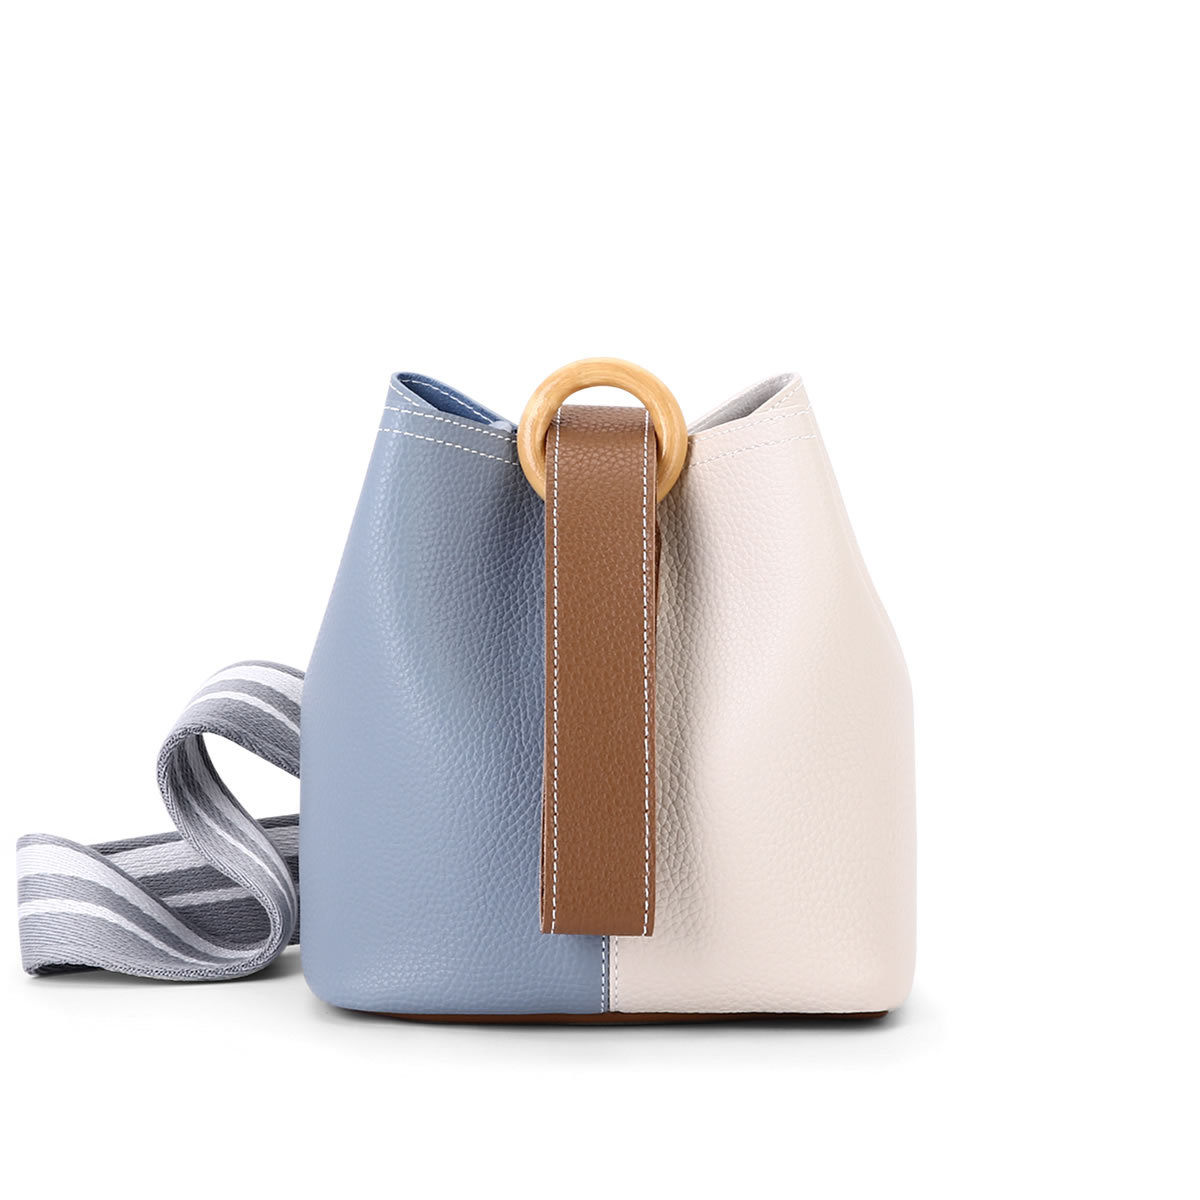 2017 split color Cute Women Messenger bucket Bags Small High Quality PU leather Shoulder Bags Ladies Hand Bags crossbody bag fashion patchwork women crossbody bags high quality pu leather women shoulder bag hit color ladies messenger bags small sac new